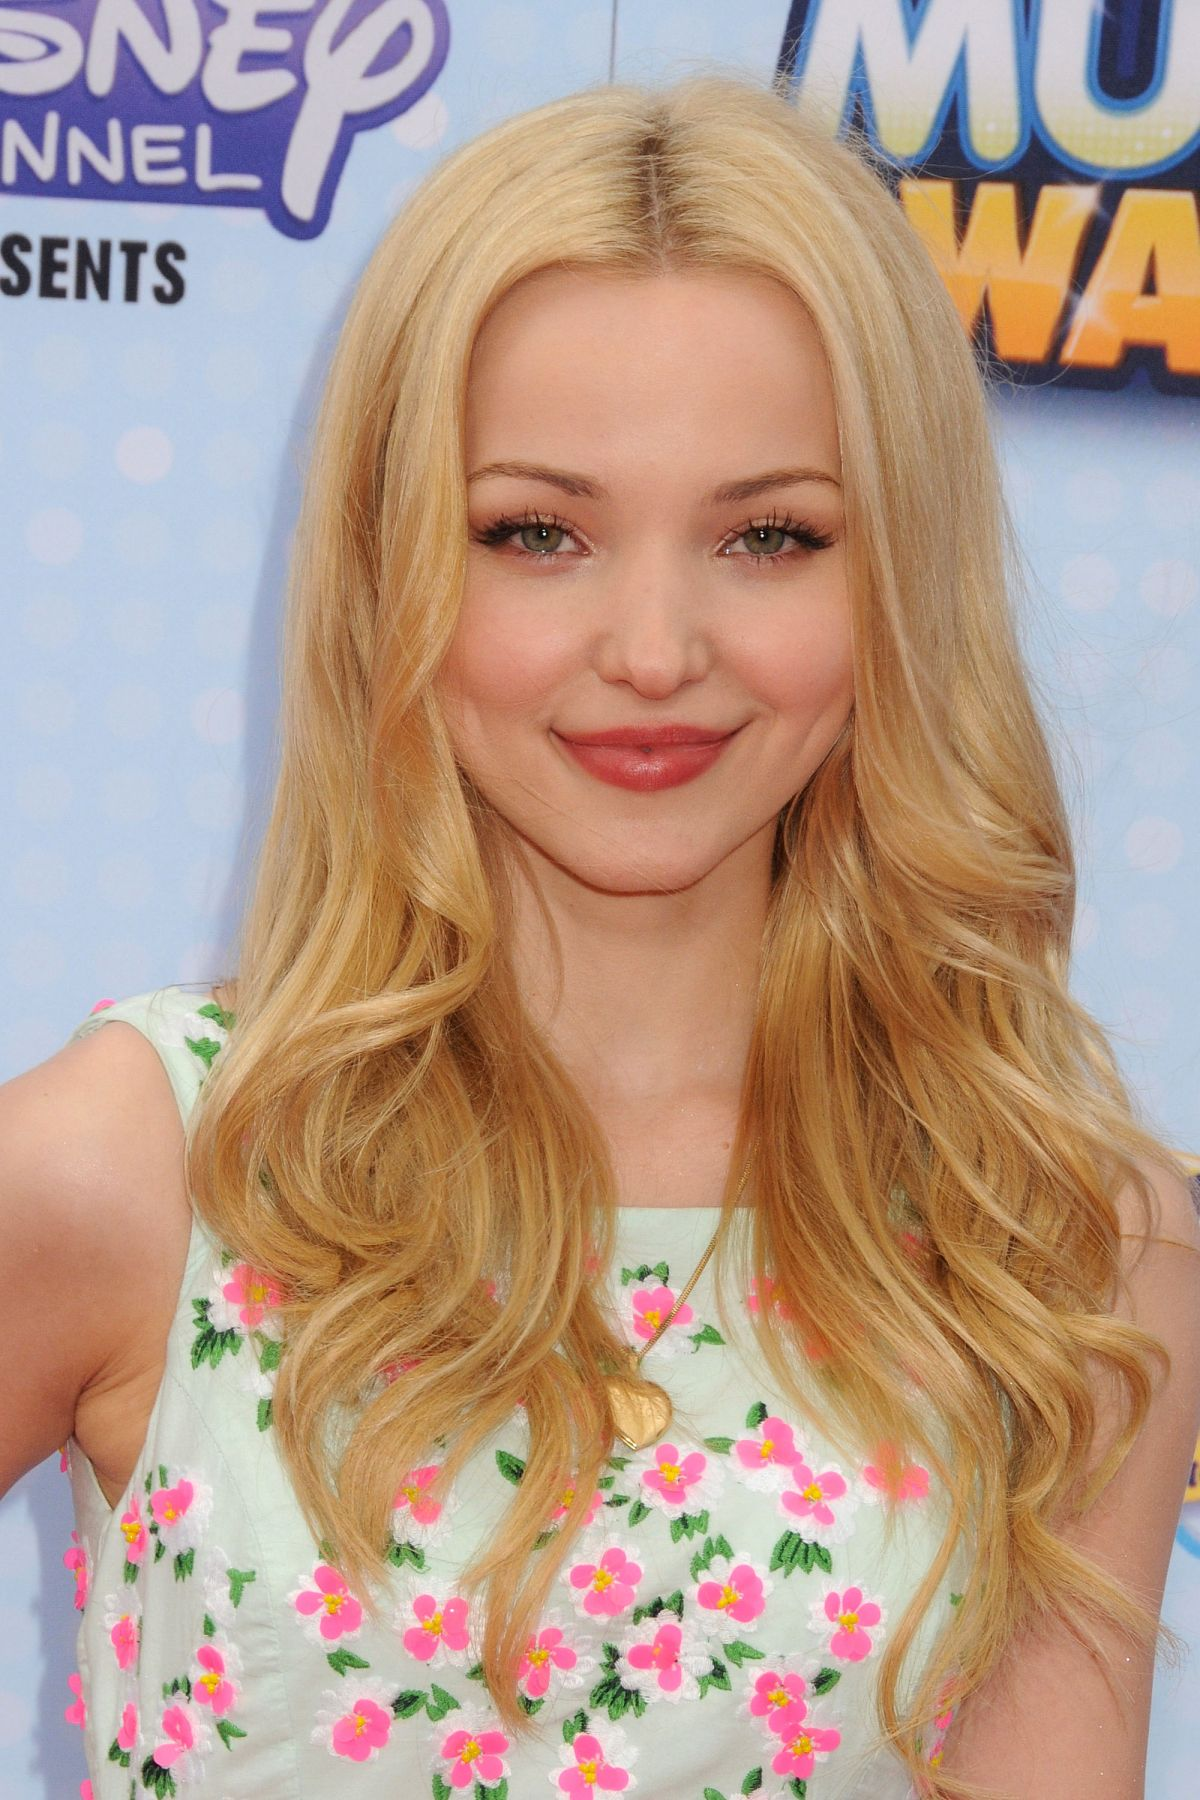 dove cameron sisterdove cameron age, dove cameron songs, dove cameron if only, dove cameron movies, dove cameron if only lyrics, dove cameron and mitchell hope, dove cameron sister, dove cameron twin, dove cameron what a girl is, dove cameron twitter, dove cameron true love, dove cameron instagram, dove cameron bio, dove cameron true love lyrics, dove cameron and ryan mccartan, dove cameron quiz, dove cameron family, dove cameron concert, dove cameron youtube, dove cameron house